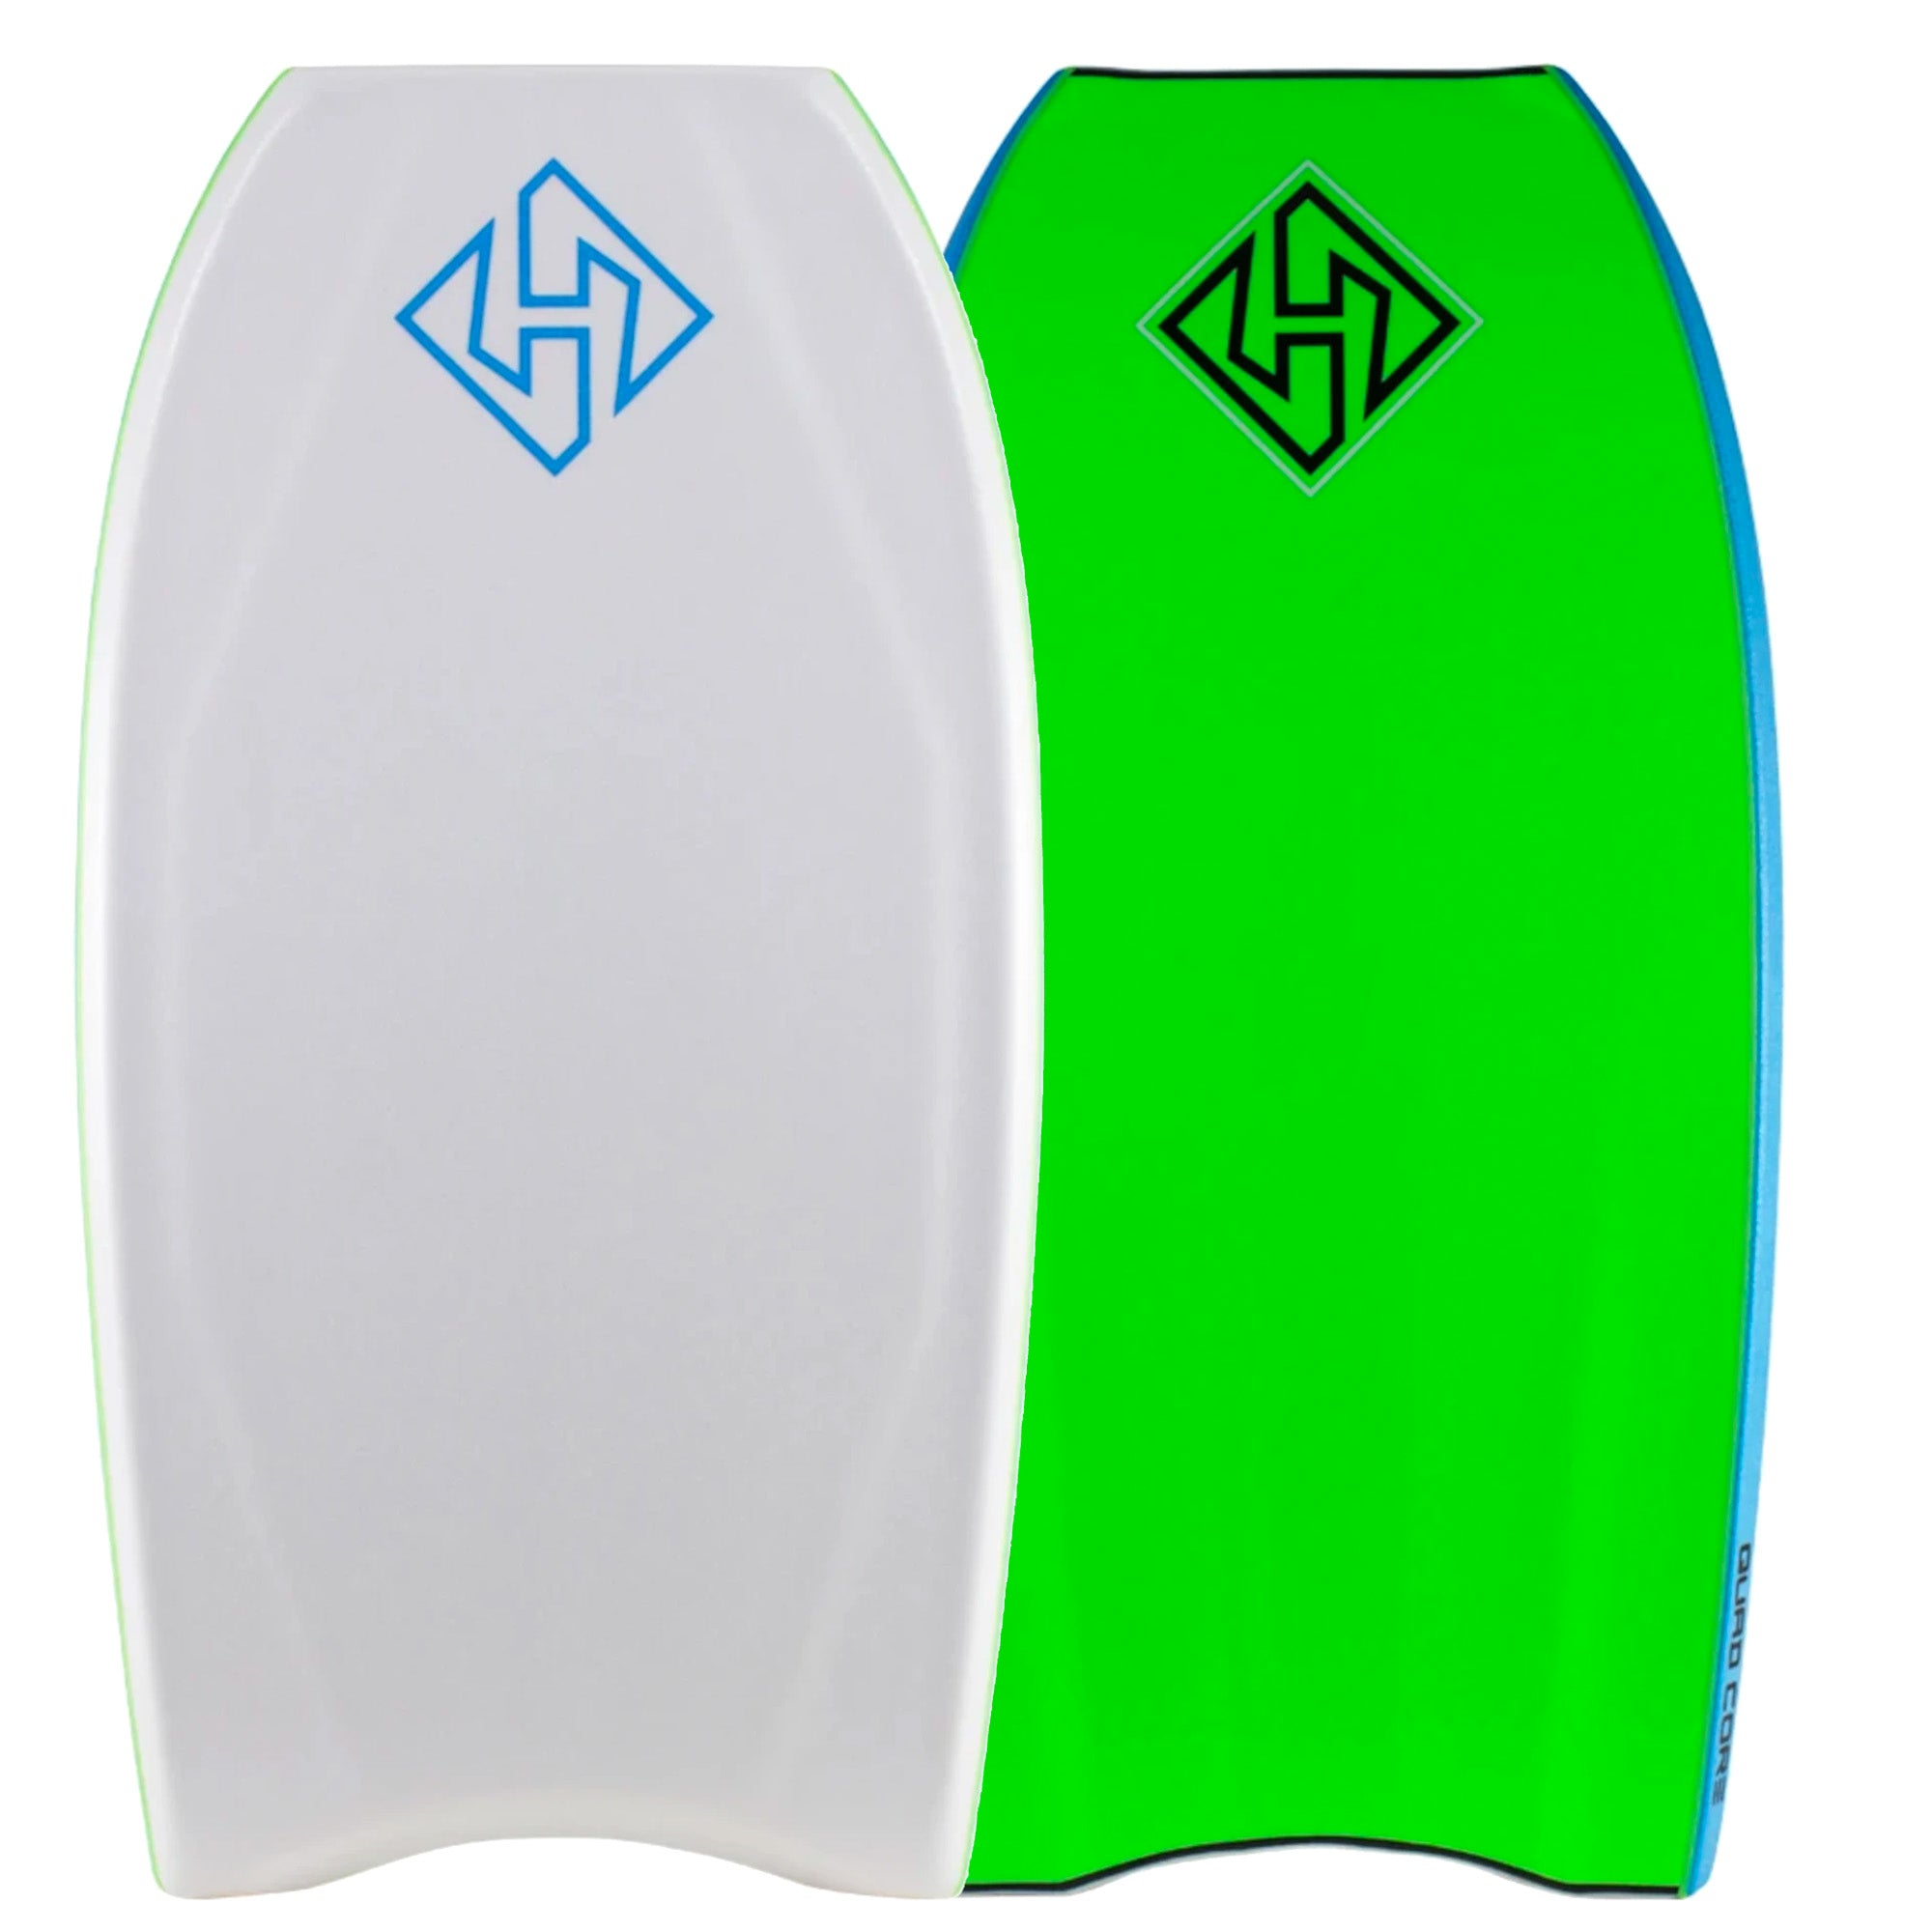 "Hubb Quad Core Sci-Five Crescent Tail 41.5"" Bodyboard - White/Green"